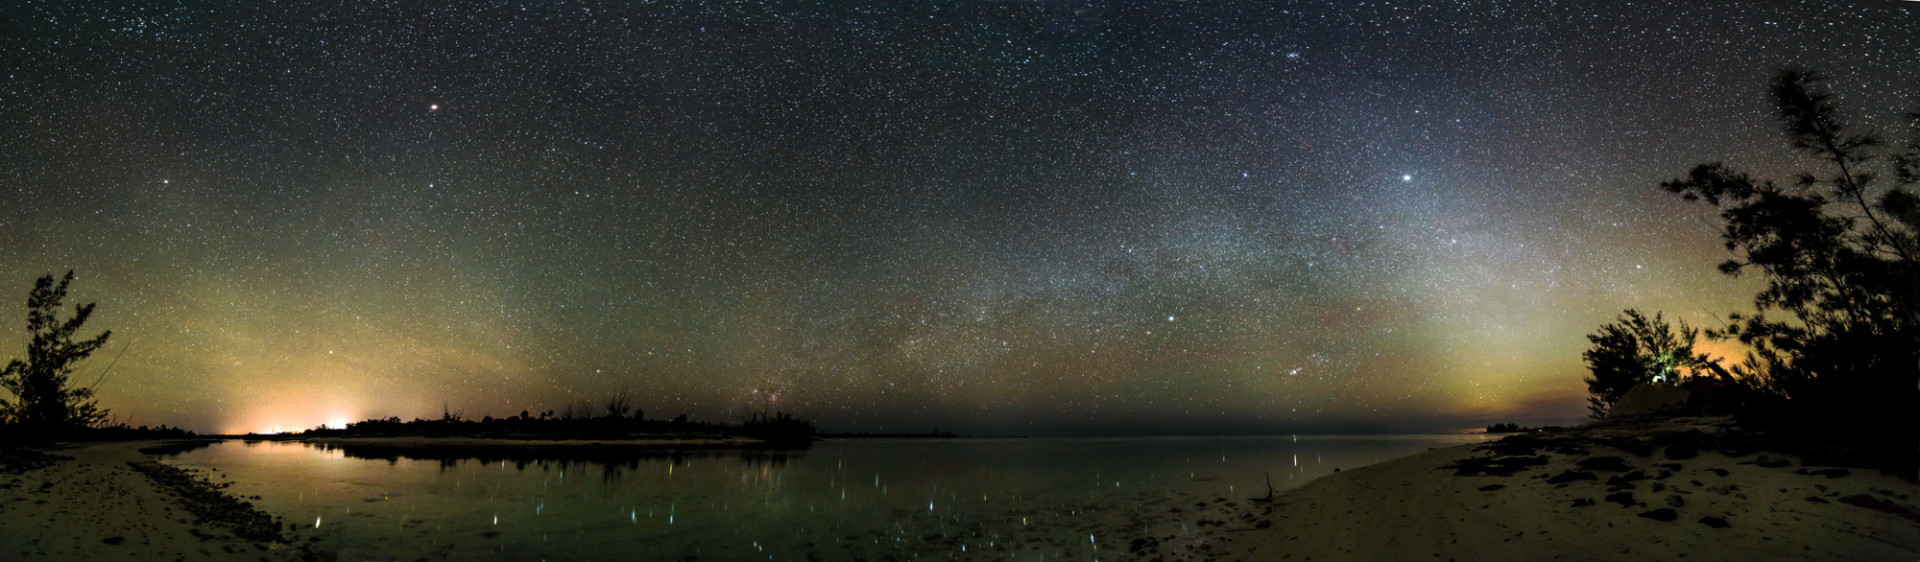 Plum Creek Milky Way Pano-2